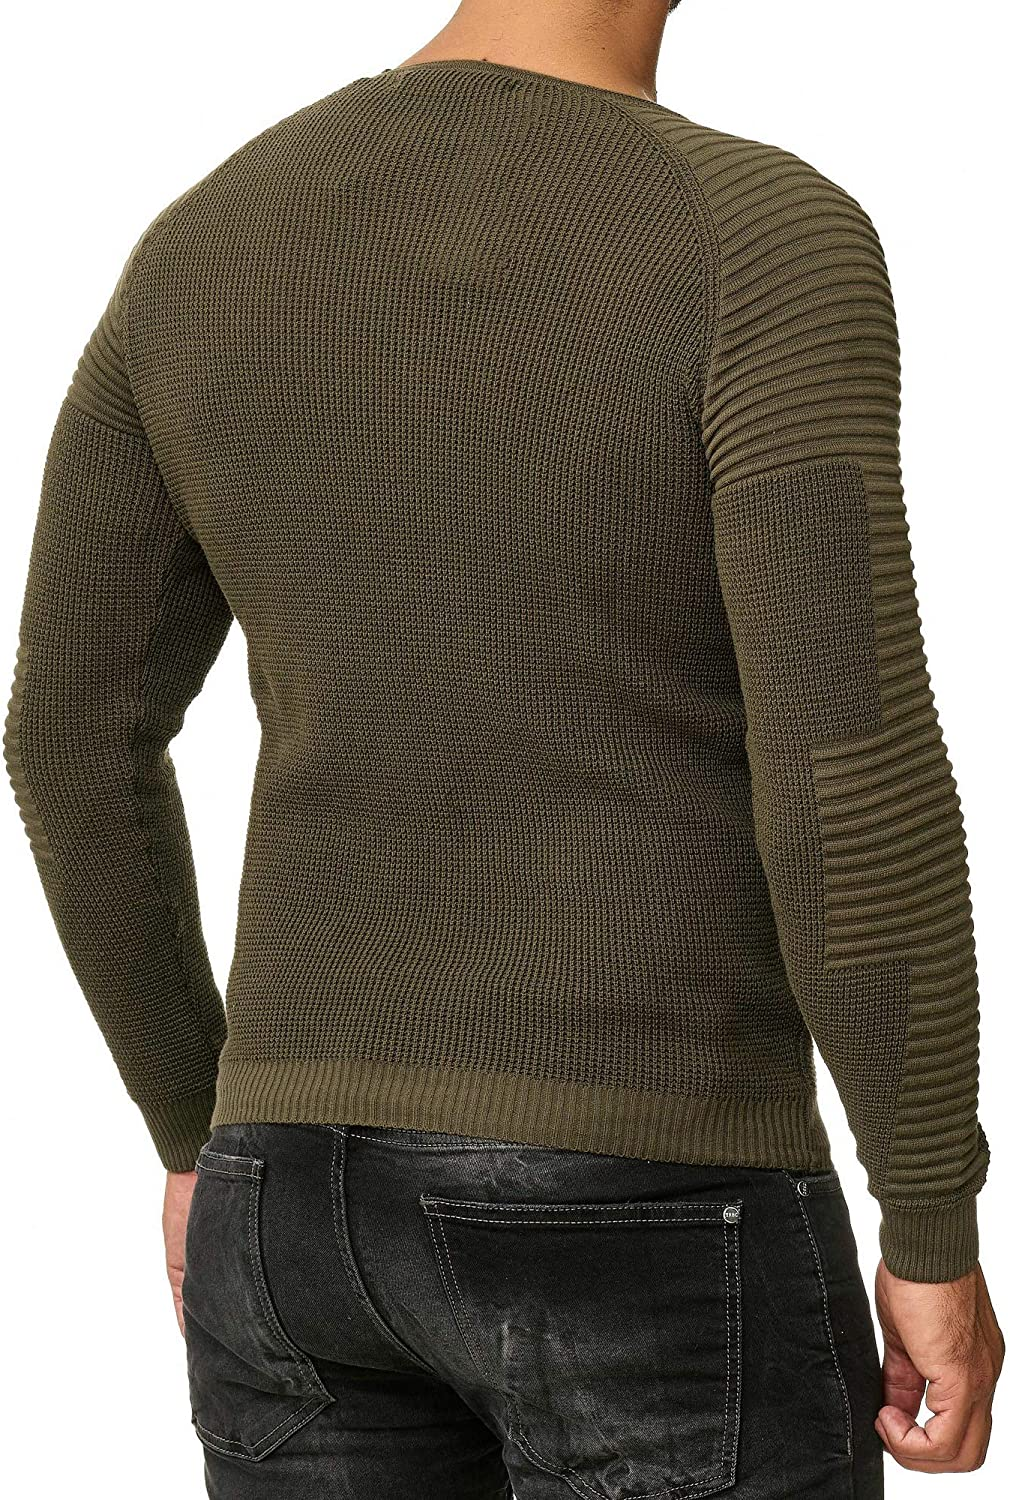 Red Bridge Mens Pullover Longsleeve Casual Jumper Ribbed Basic Line Knit Sweater